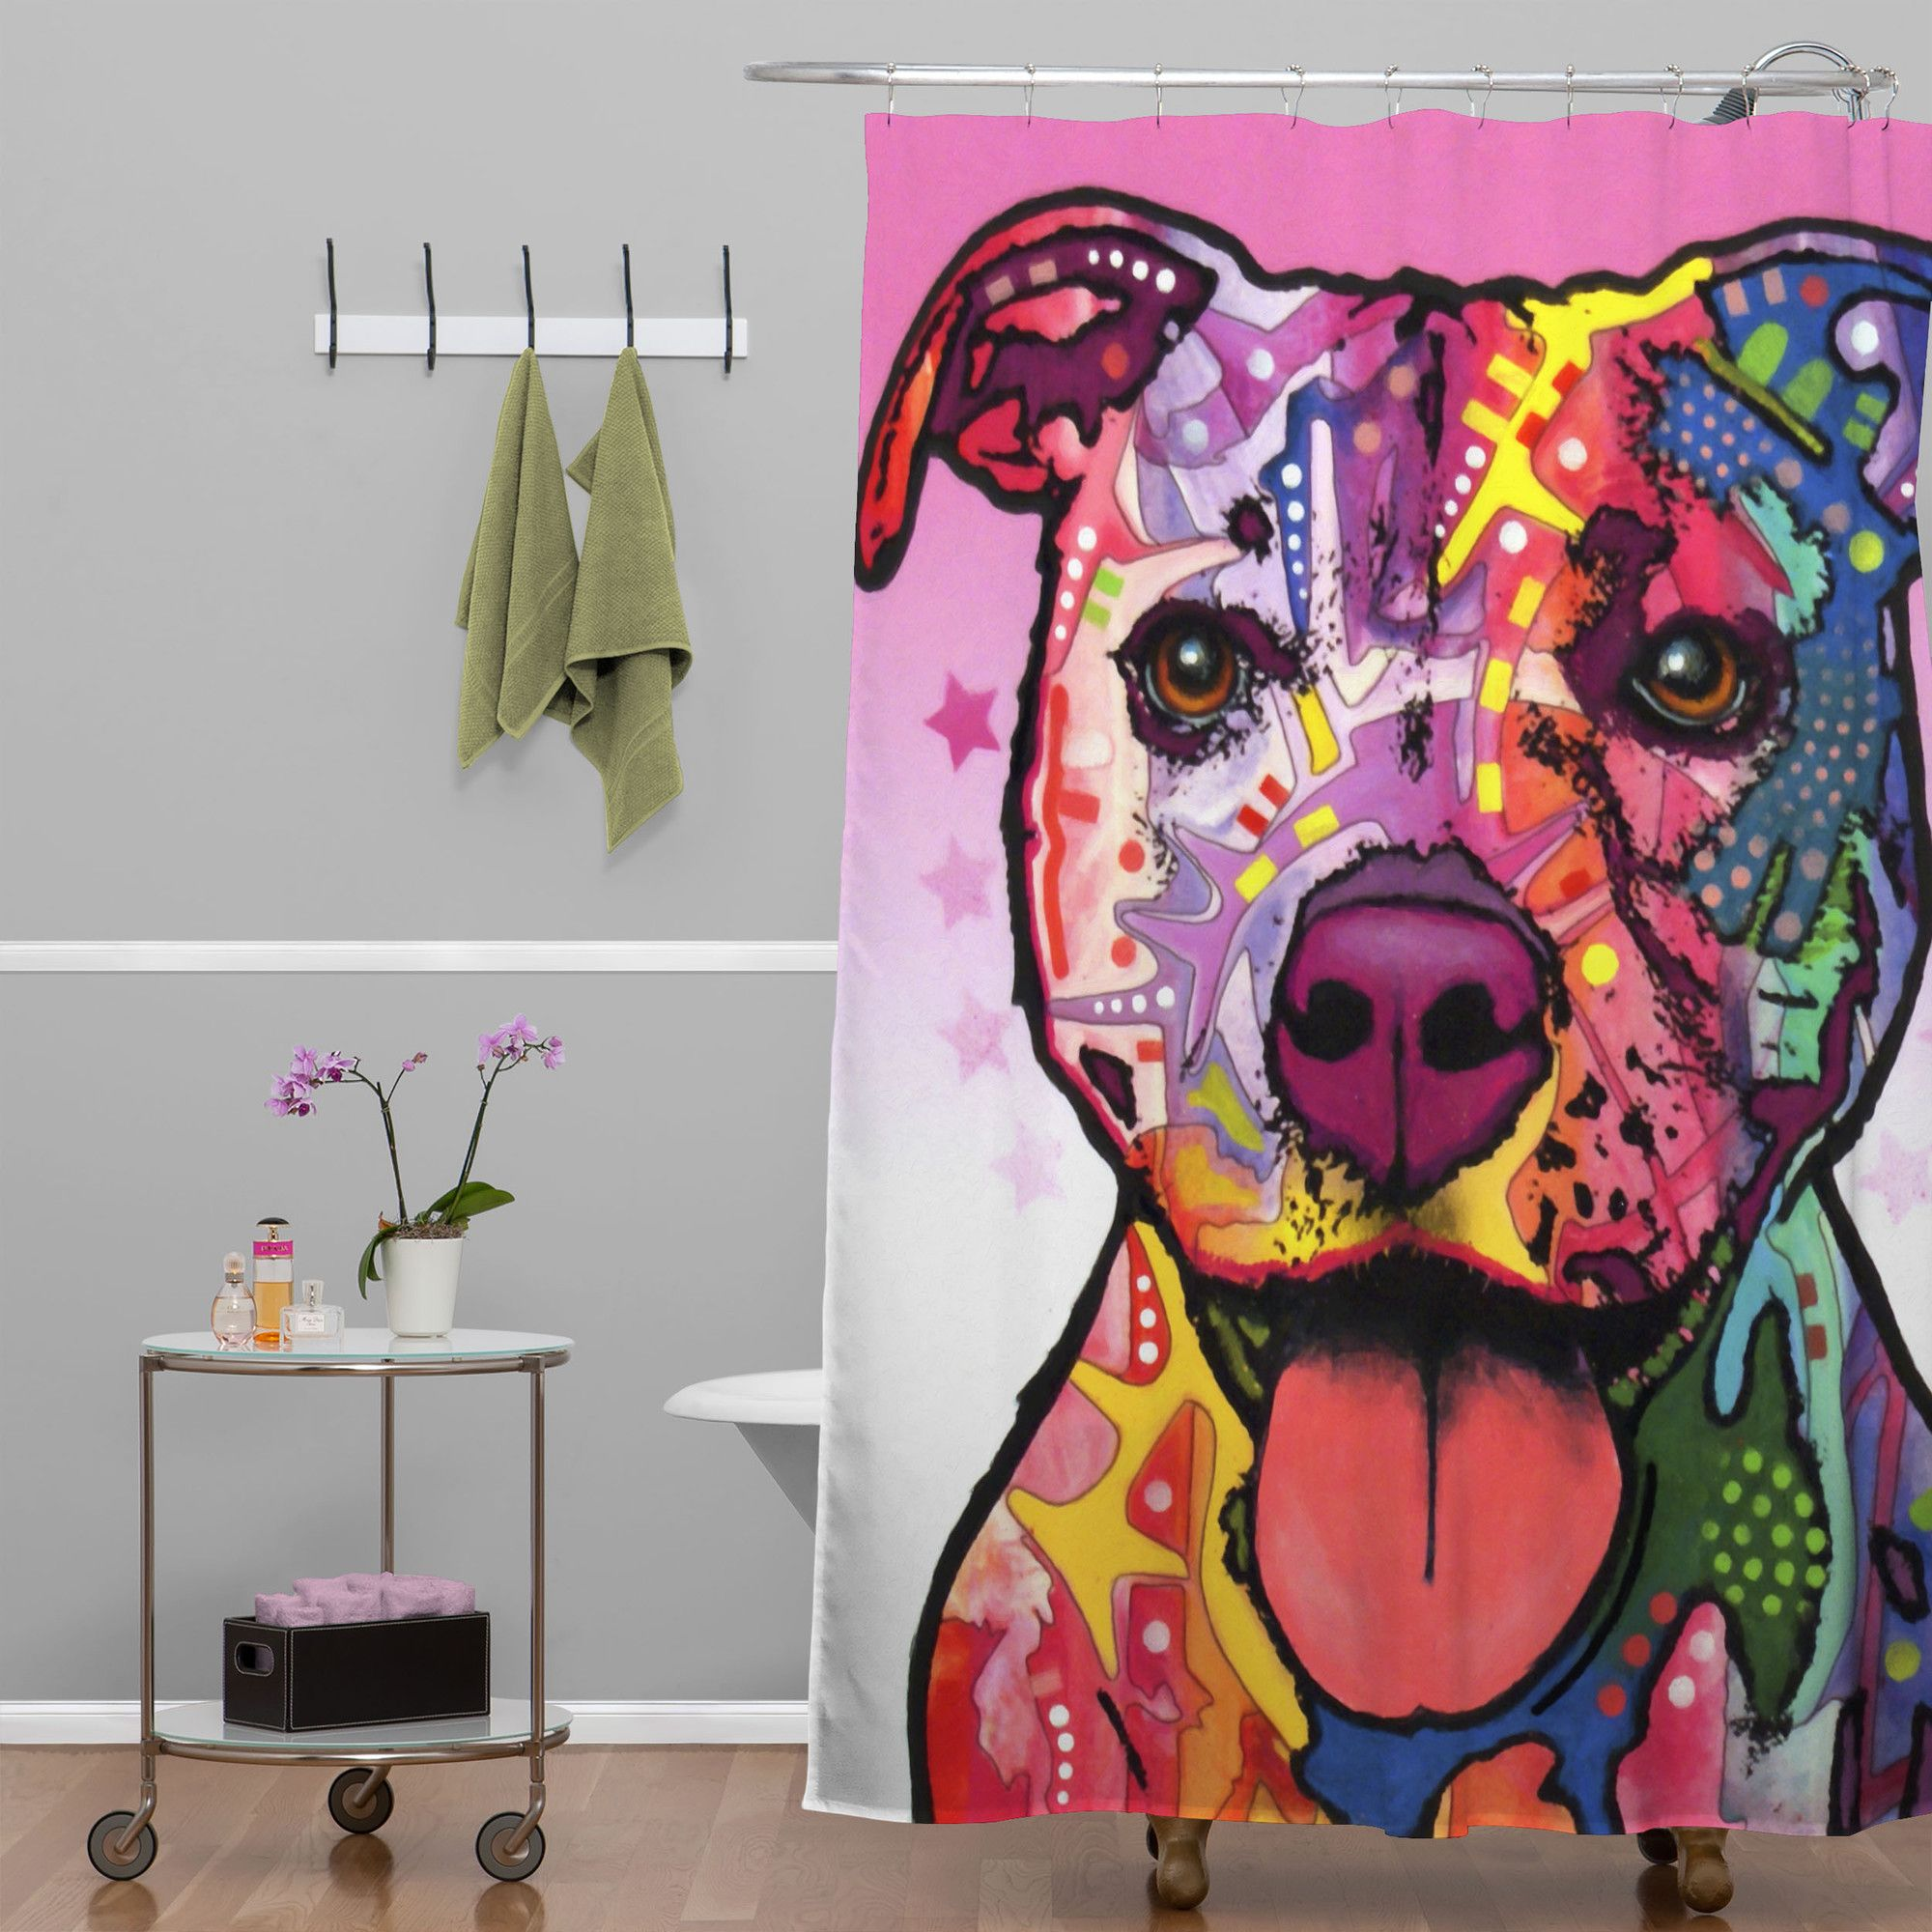 Deny Designs Dean Russo Cherish The Pitbull Shower Curtain Cat Shower Curtain Deny Designs Cool Shower Curtains